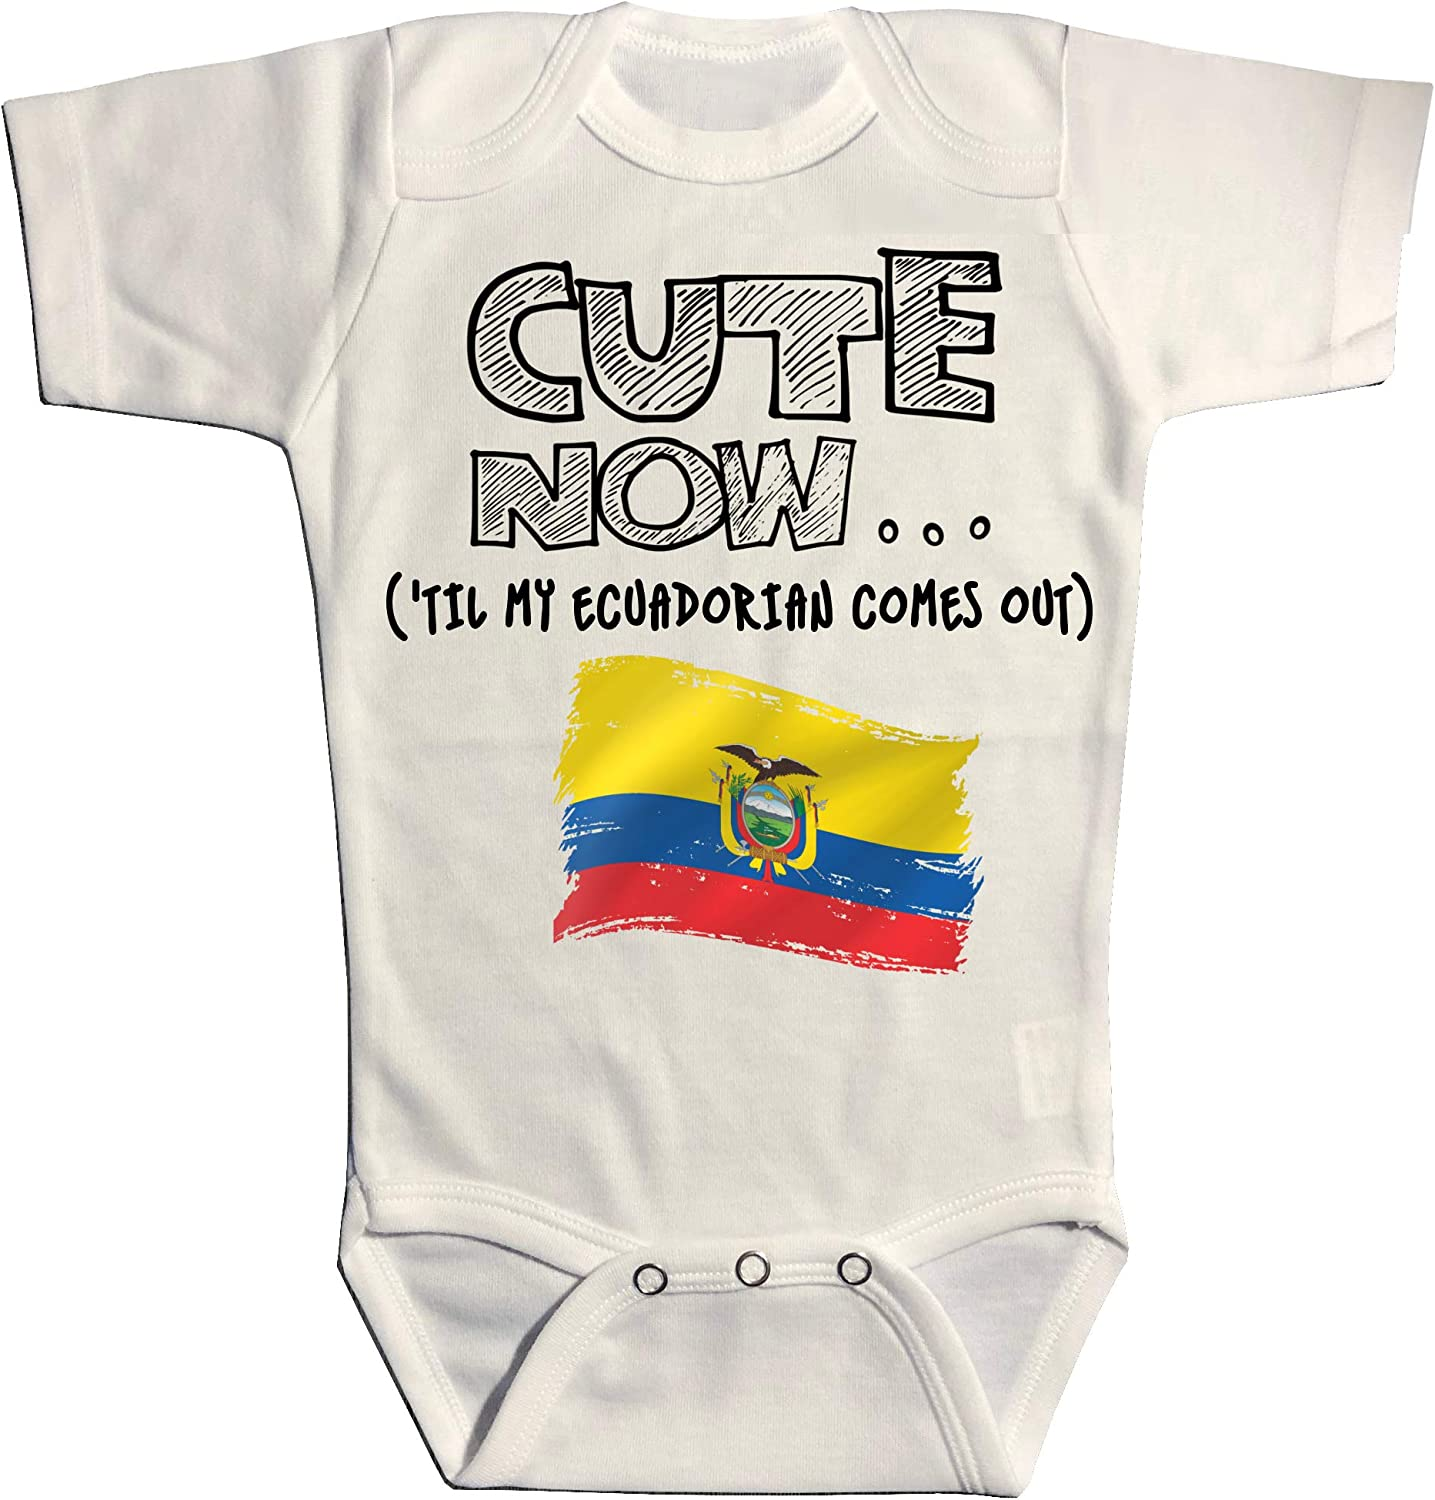 Milk Belly \u2022 Baby Outfit \u2022 Unisex Baby Outfit \u2022 Cute Baby Bodysuit \u2022 Baby Boy Outfit \u2022 Baby Girl Outfit \u2022 Newborn Bodysuit \u2022 Newborn Outfit